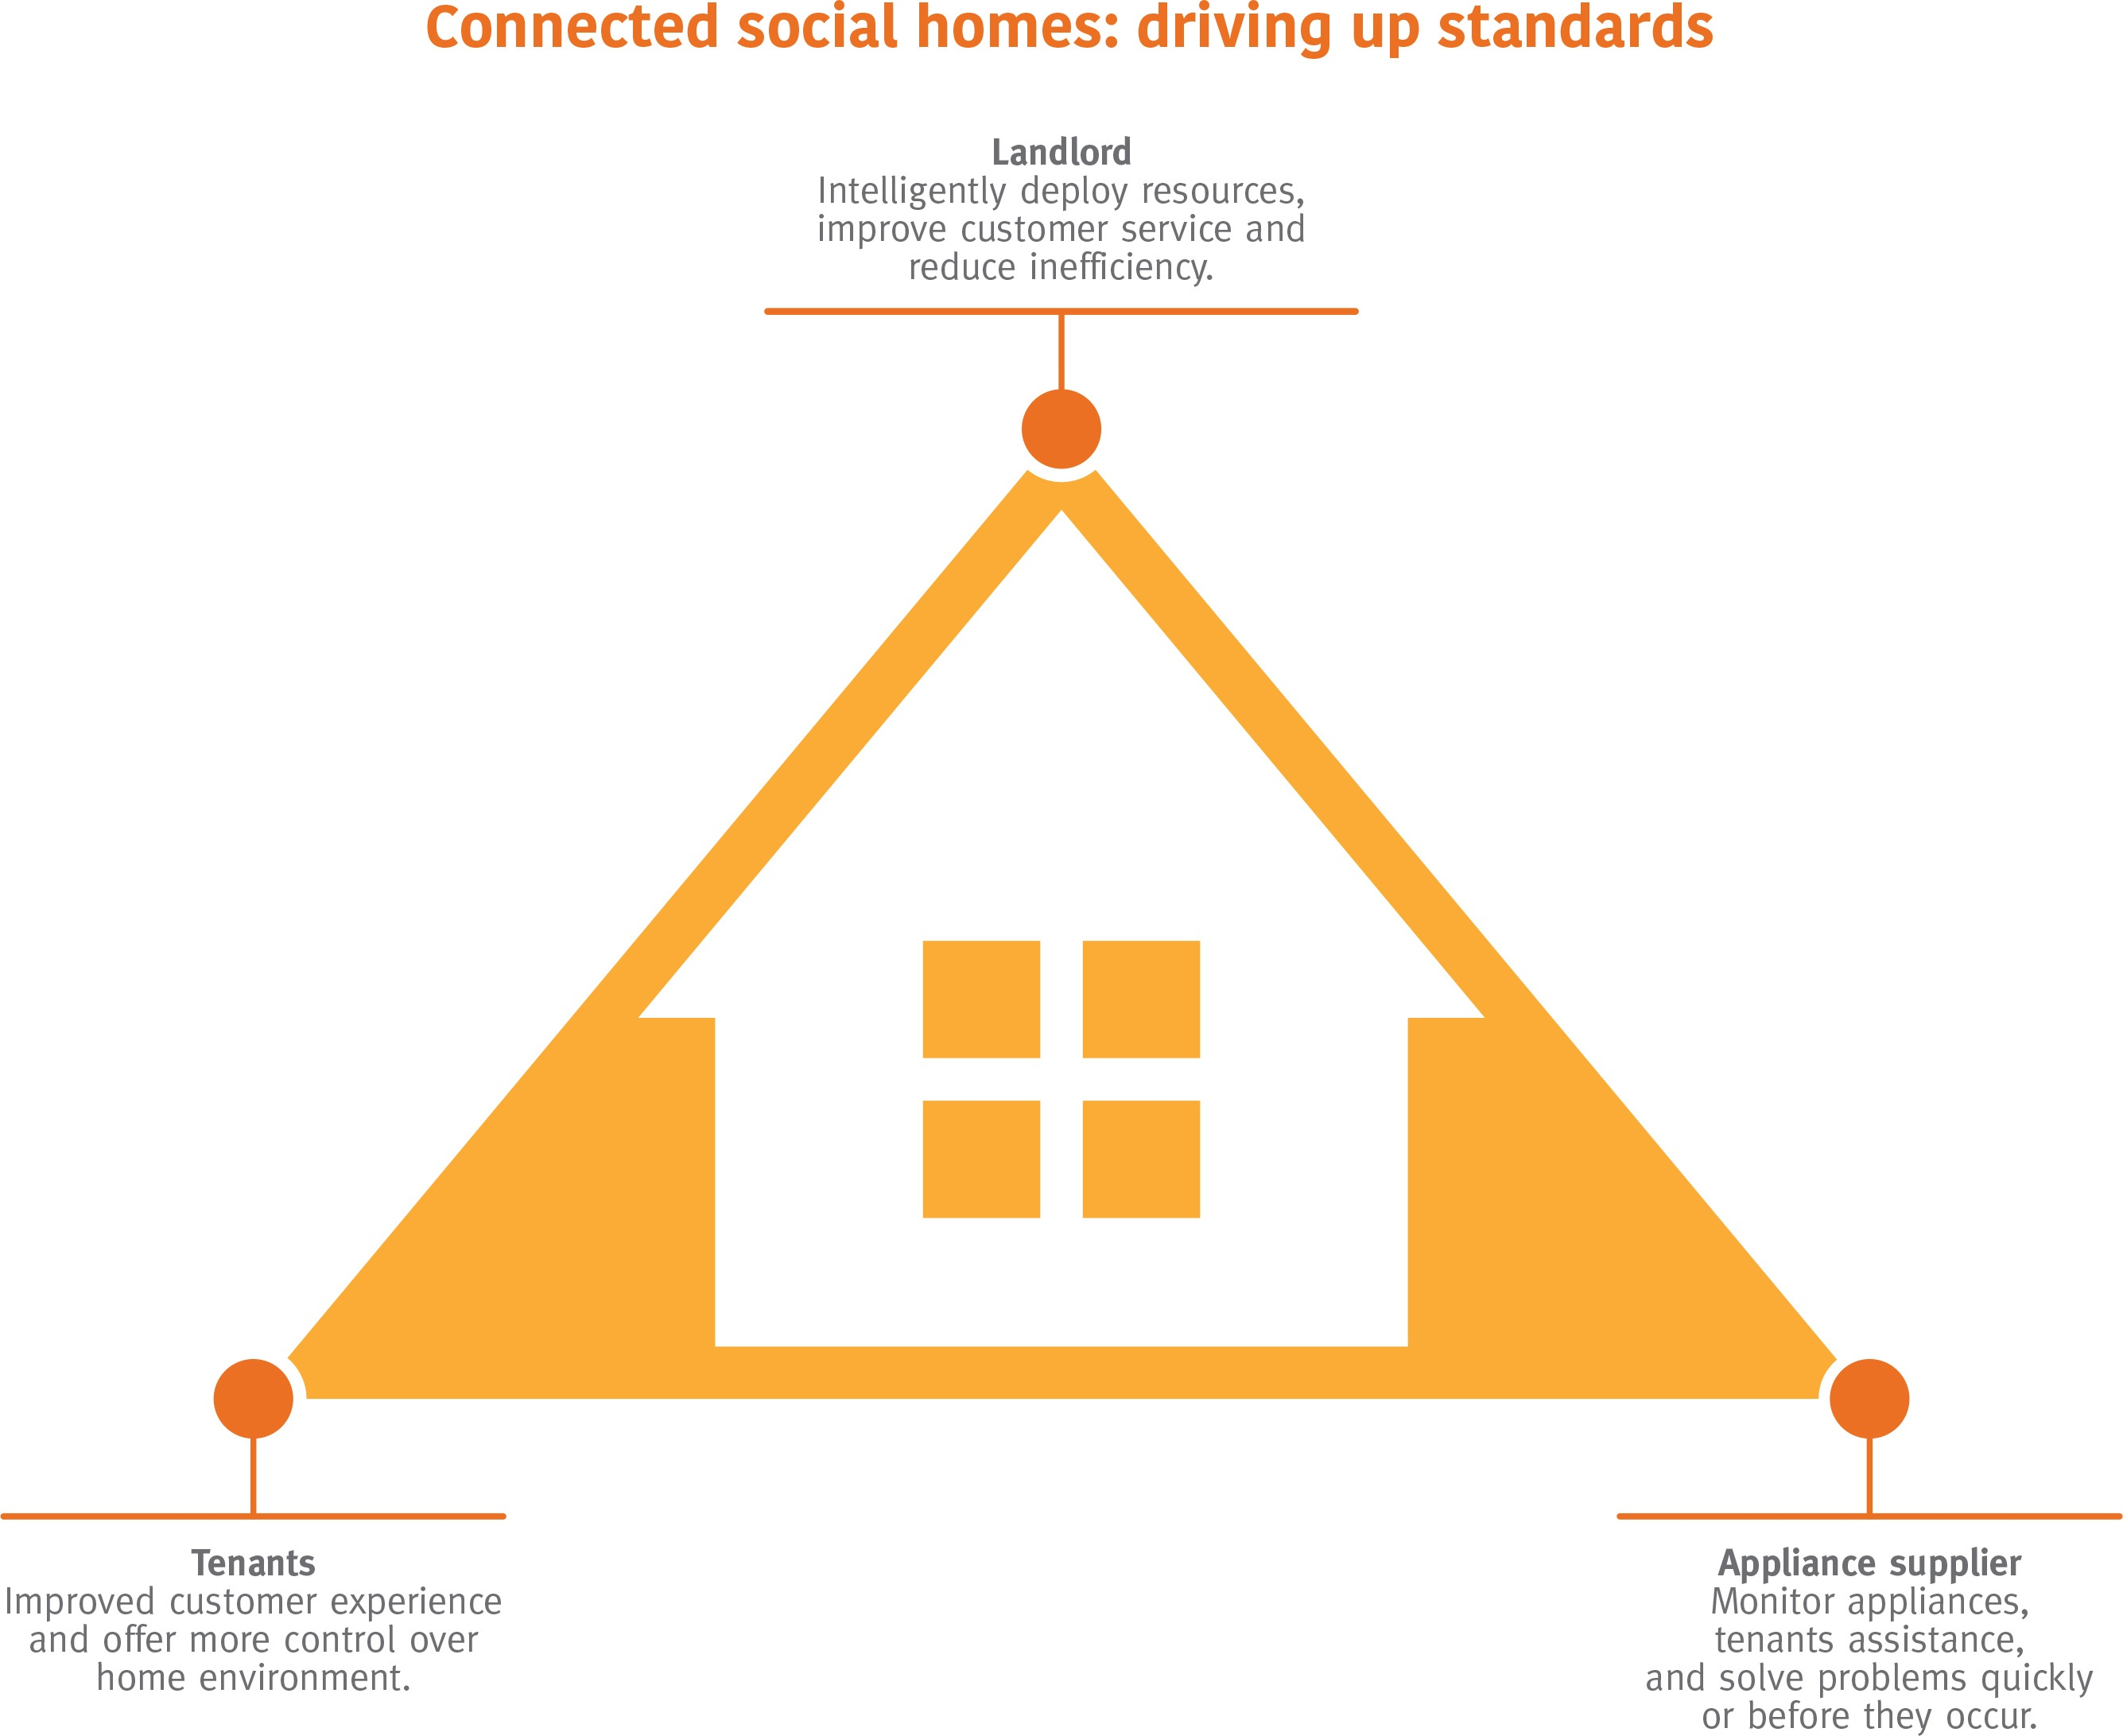 Connected Social Homes